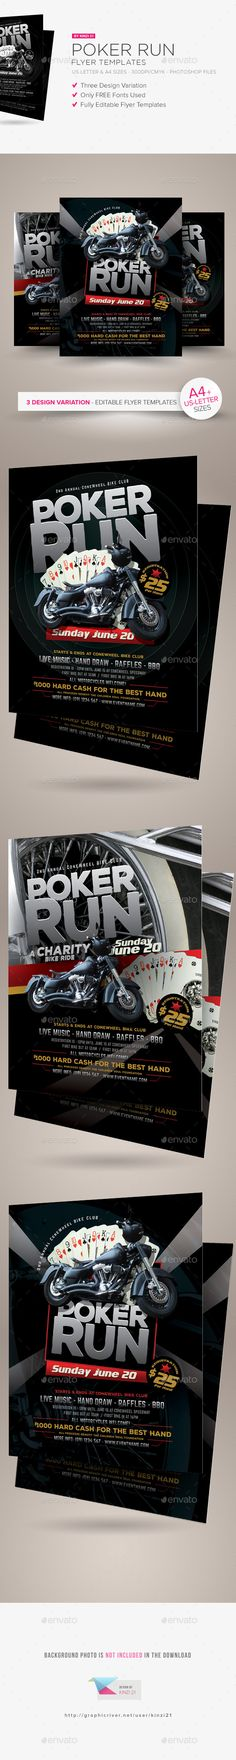 Poker Run Flyer Templates  #summer #bbq #poker • Click here to download ! http://graphicriver.net/item/poker-run-flyer-templates/15918103?ref=pxcr